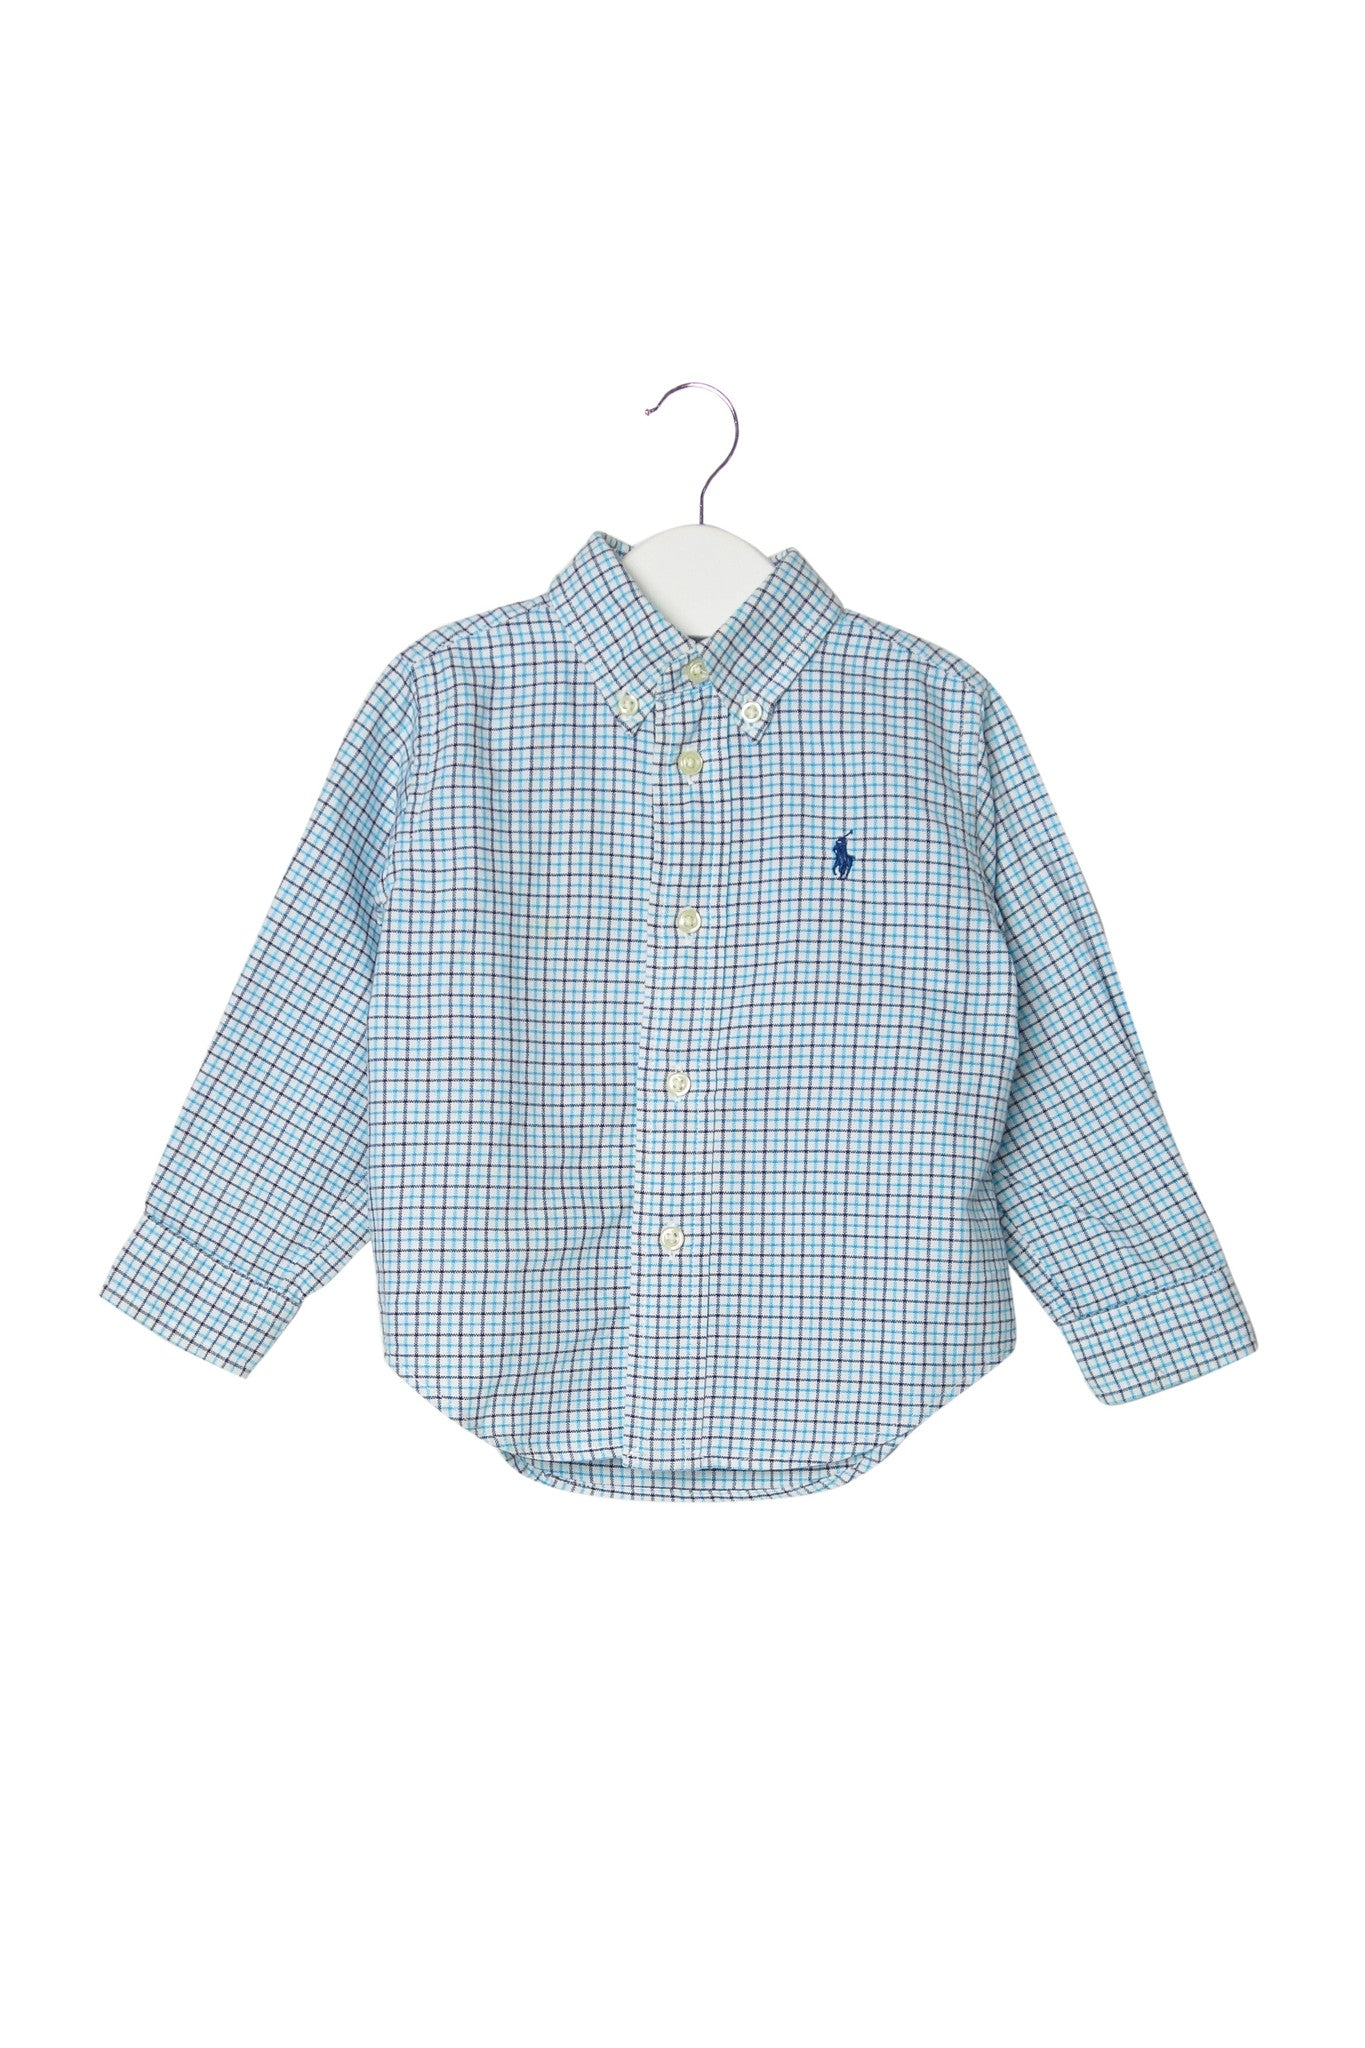 10002673 Ralph Lauren Baby~Shirt 18M at Retykle